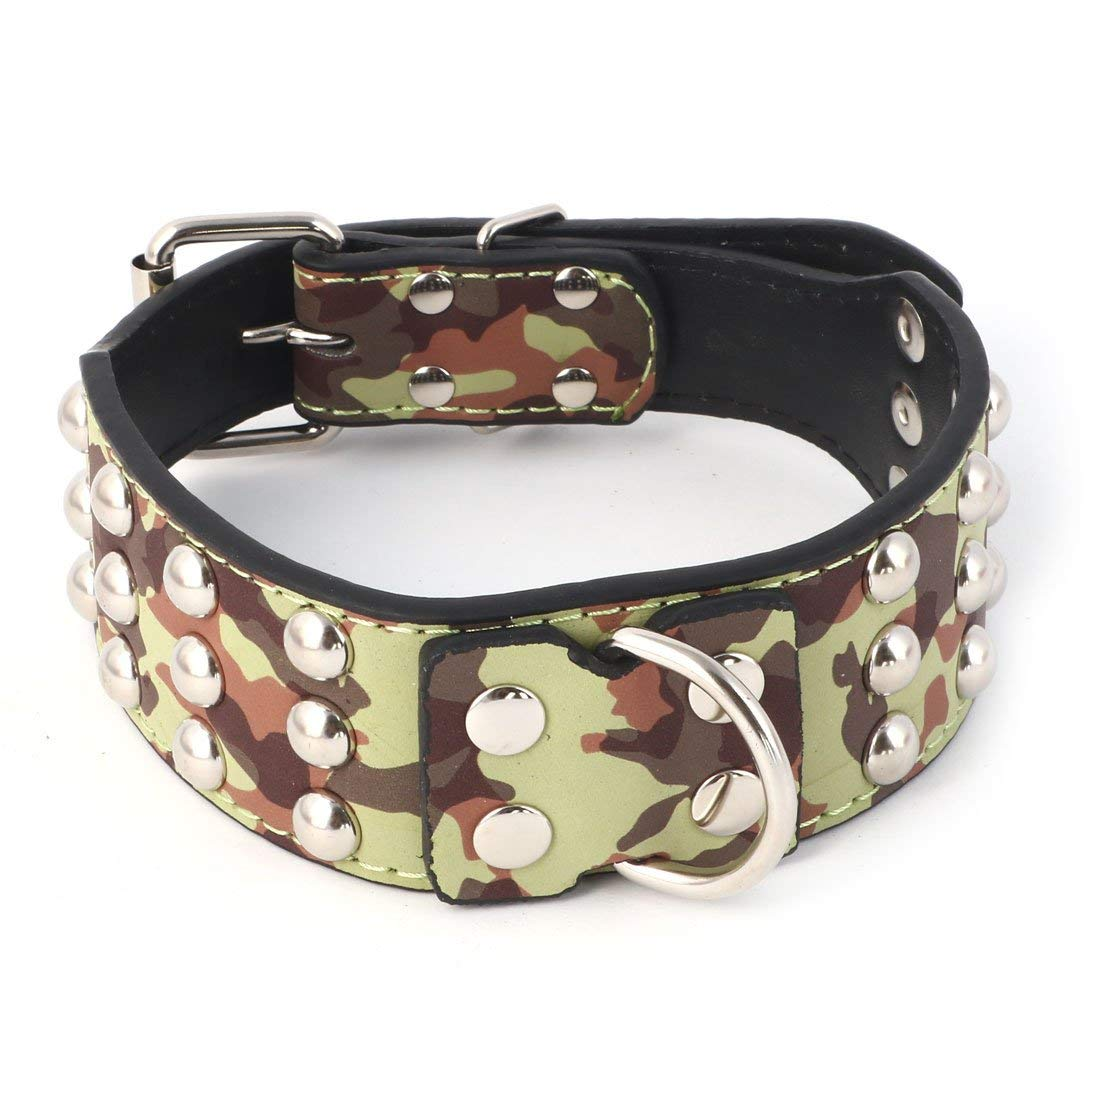 Faux Leather Outdoor Spiked Rivets Camouflage Pattern Design Pet Pitbull Dog Cat Collar